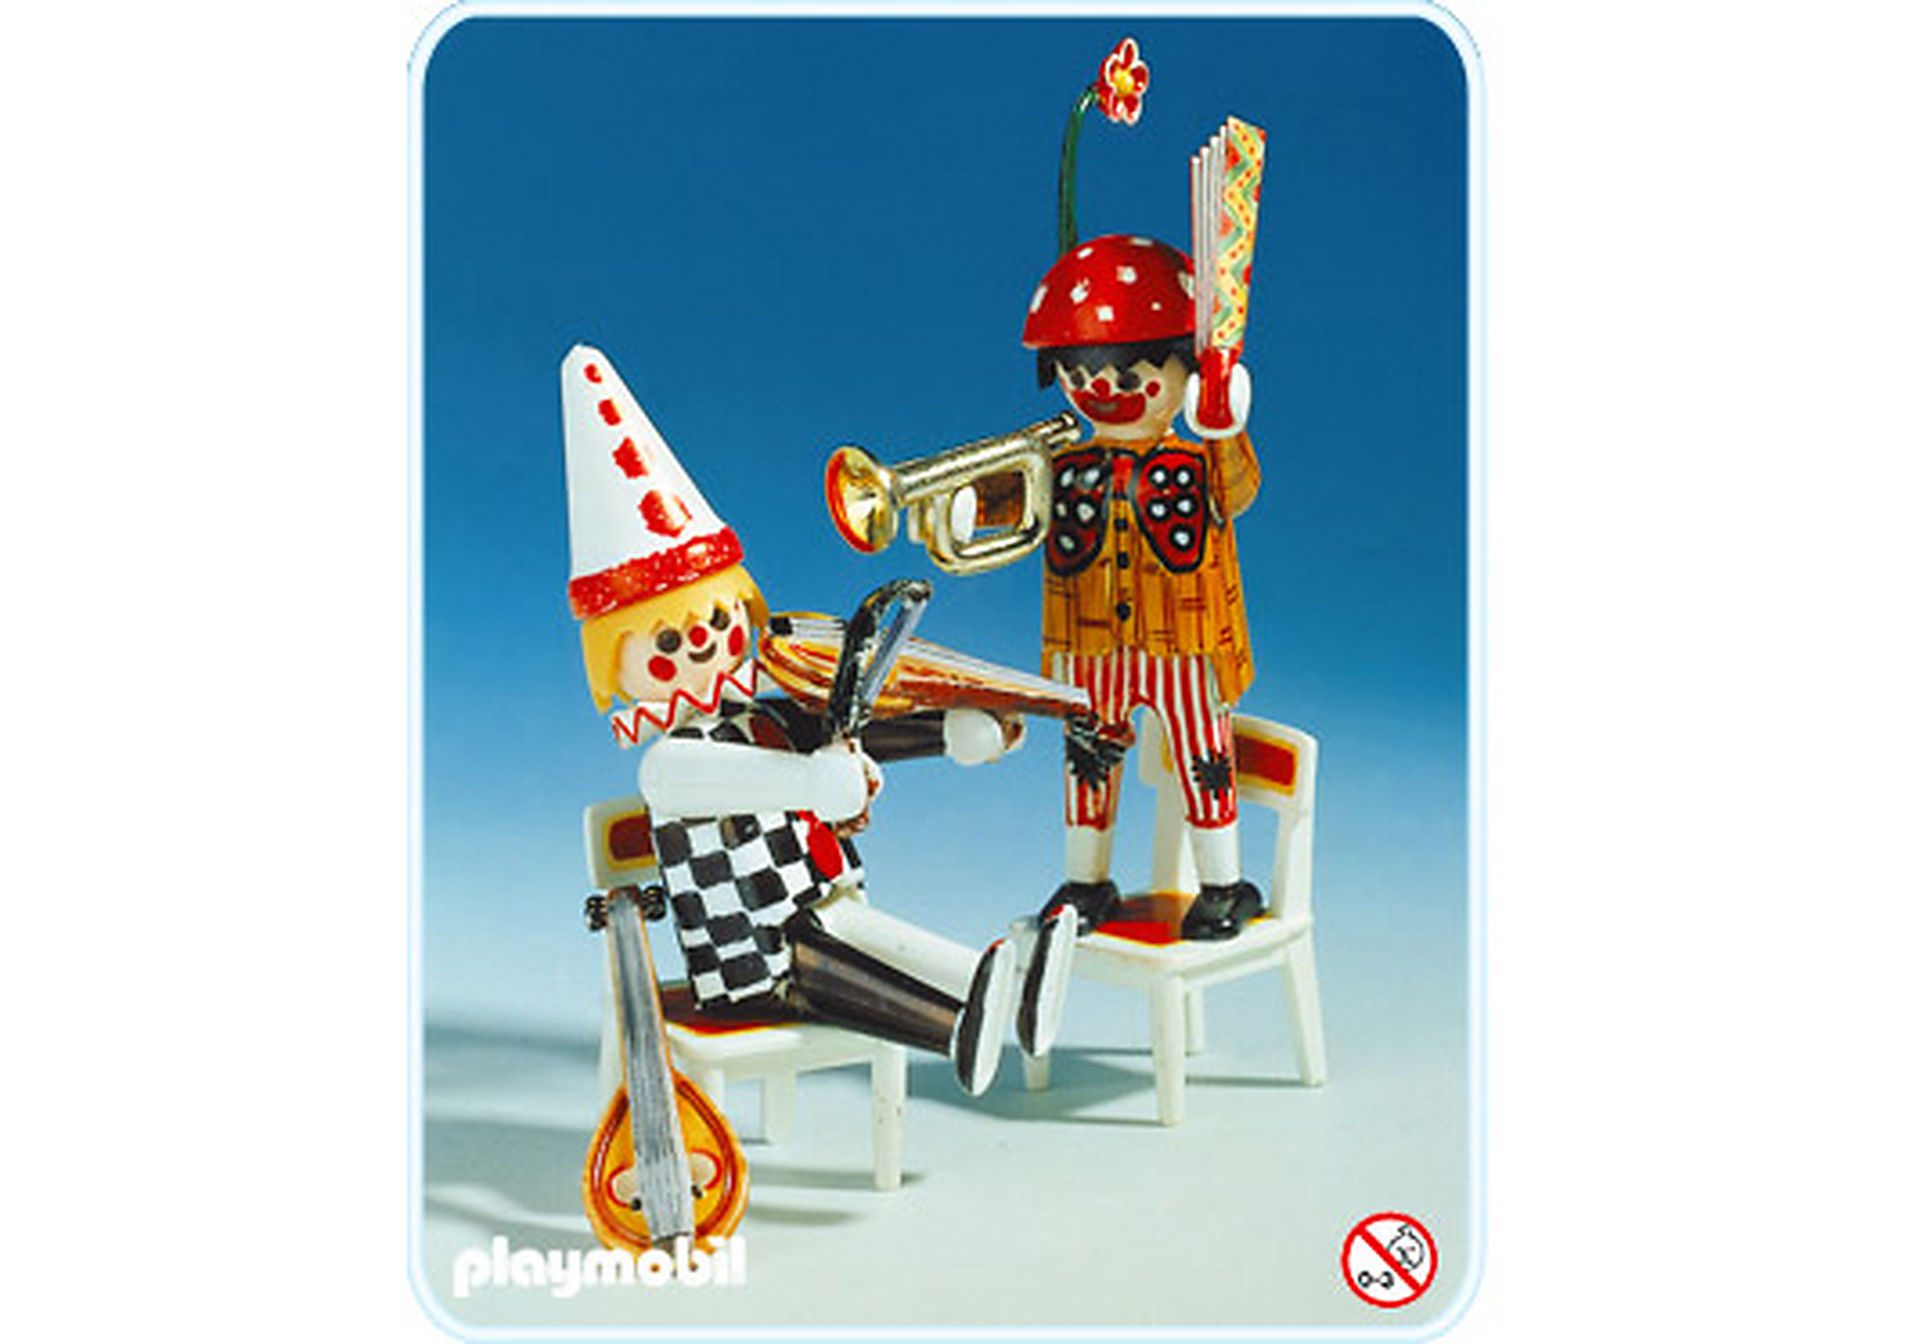 http://media.playmobil.com/i/playmobil/3644-A_product_detail/Zwei Clowns